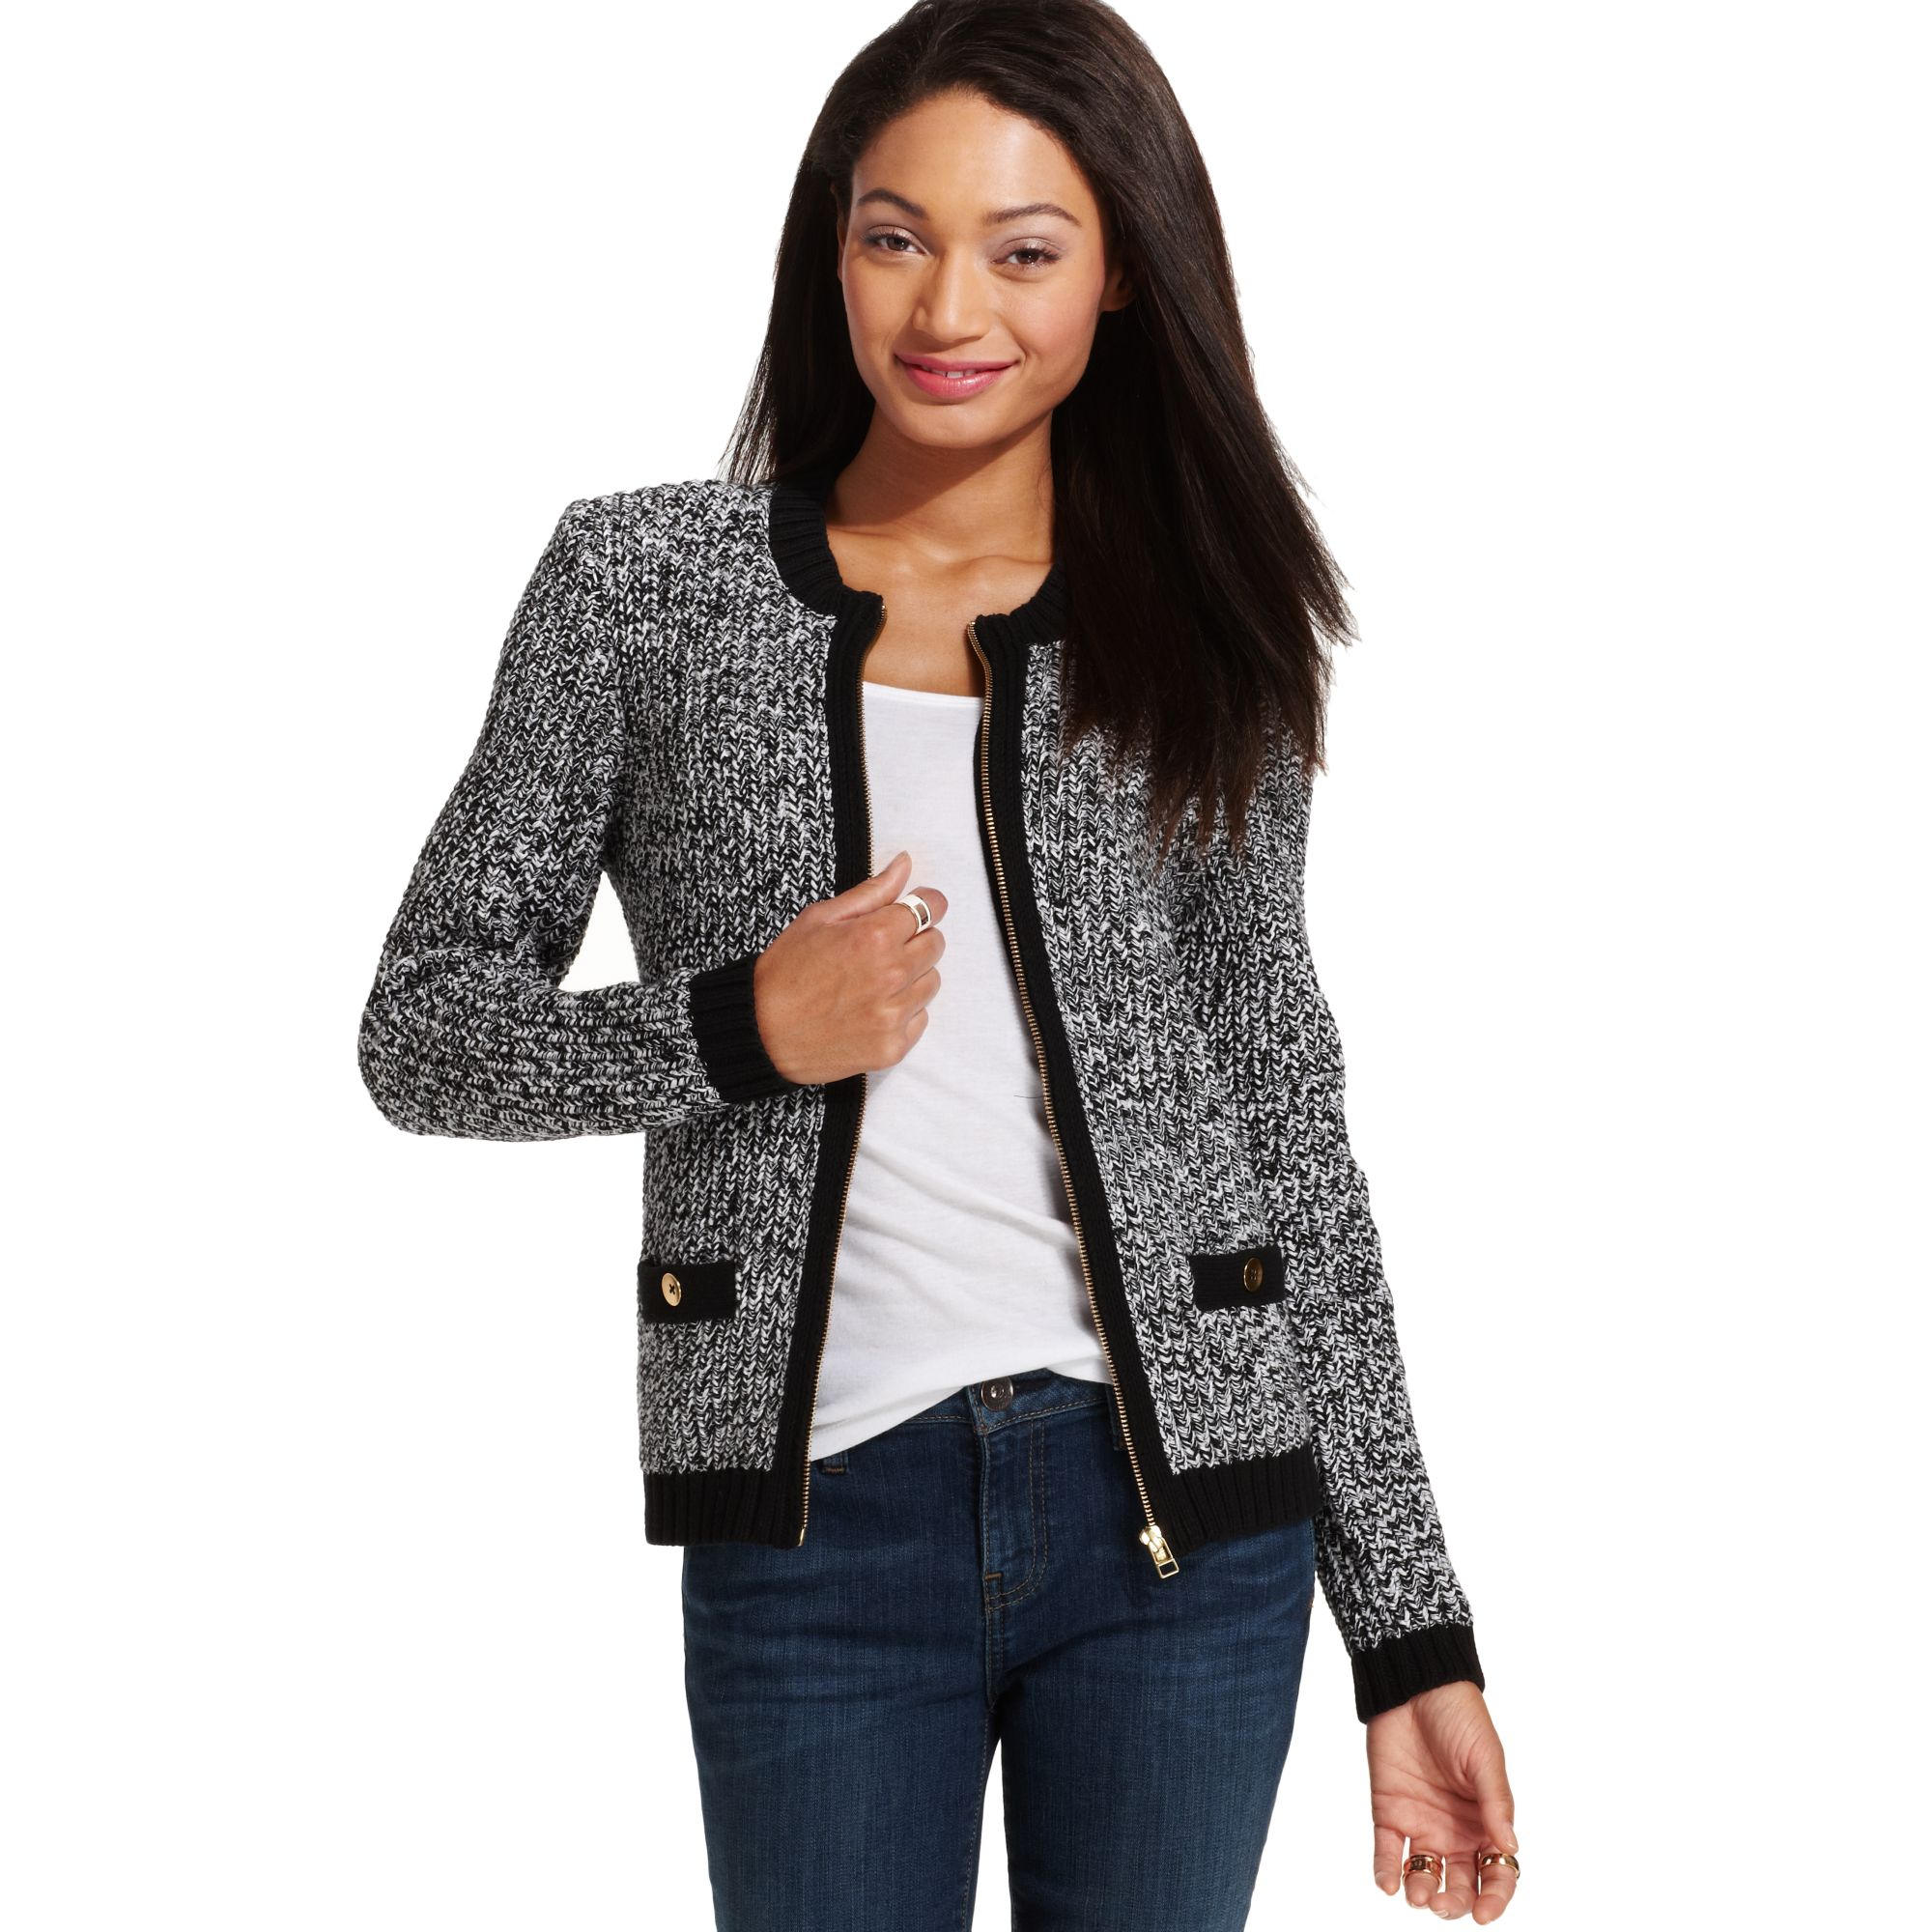 Tommy hilfiger Marled Zipup Cardigan Sweater in Black | Lyst